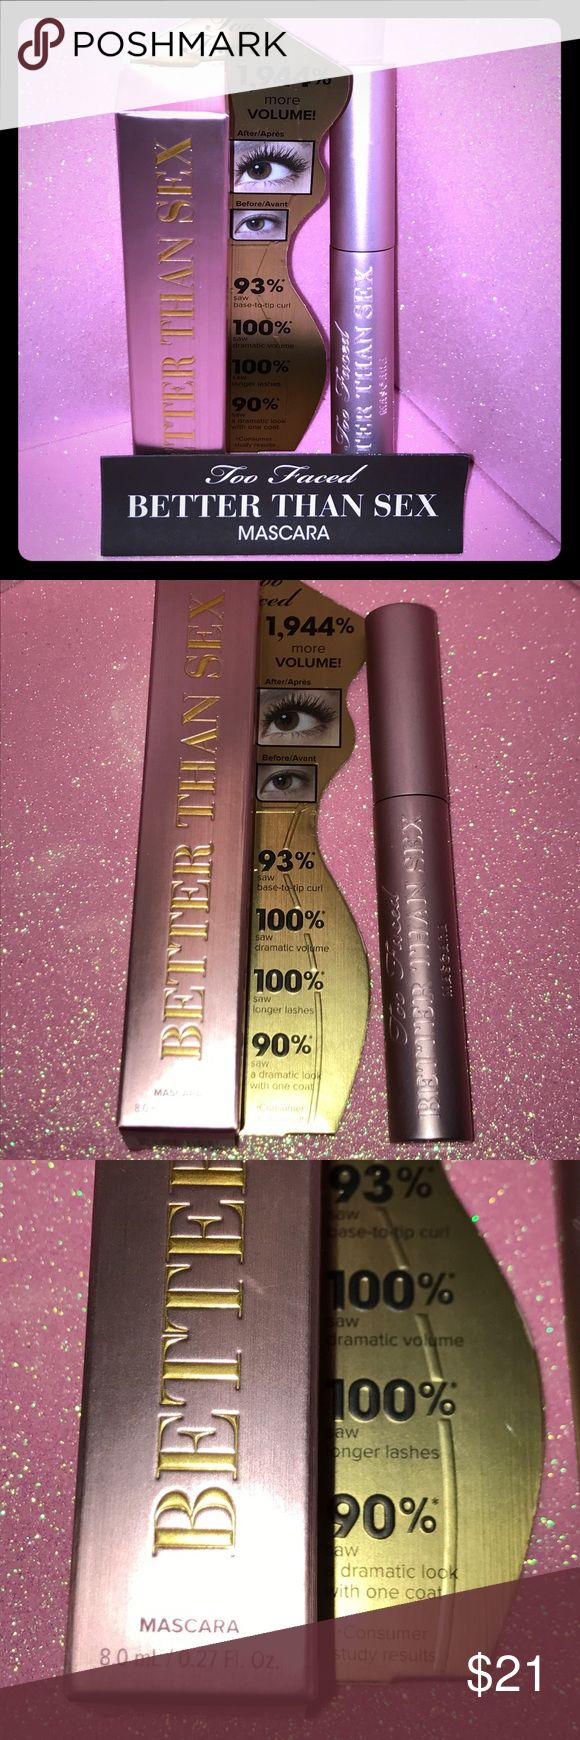 TOO FACED Better Than Sex Mascara FULL SIZE/NEW! This is for TOO FACED Better Than Sex Mascara. It is full size and comes new in box. (It was removed from the box to take pictures for this sale and then promptly it back in the original housing.) Included in this sale are the original unused product, the original box and a Too Faced product insert. PLEASE NOTE: ALL MY PRODUCTS ARE 100% AUTHENTIC! In the case of this Mascara it was purchased for me at Sephora in JCPenney. I am choosing not to…